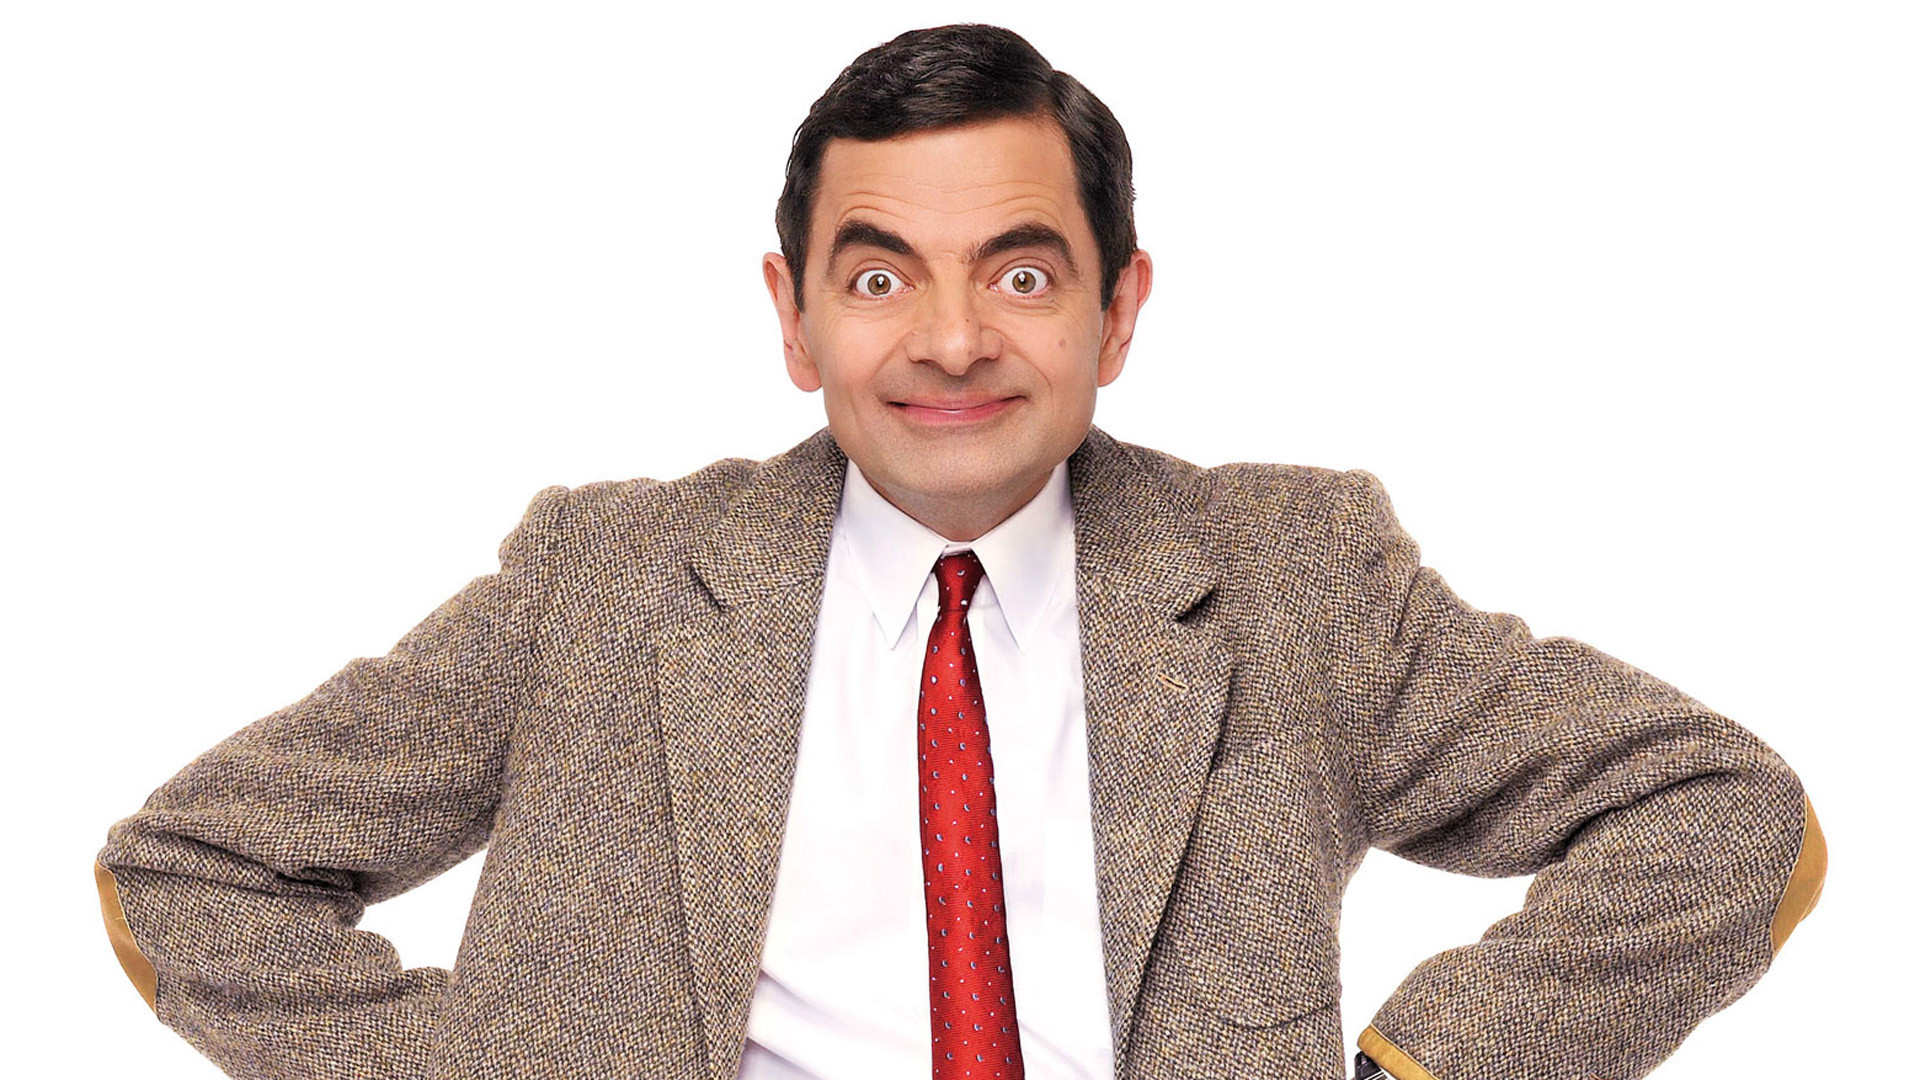 Rowan Atkinson as Bean